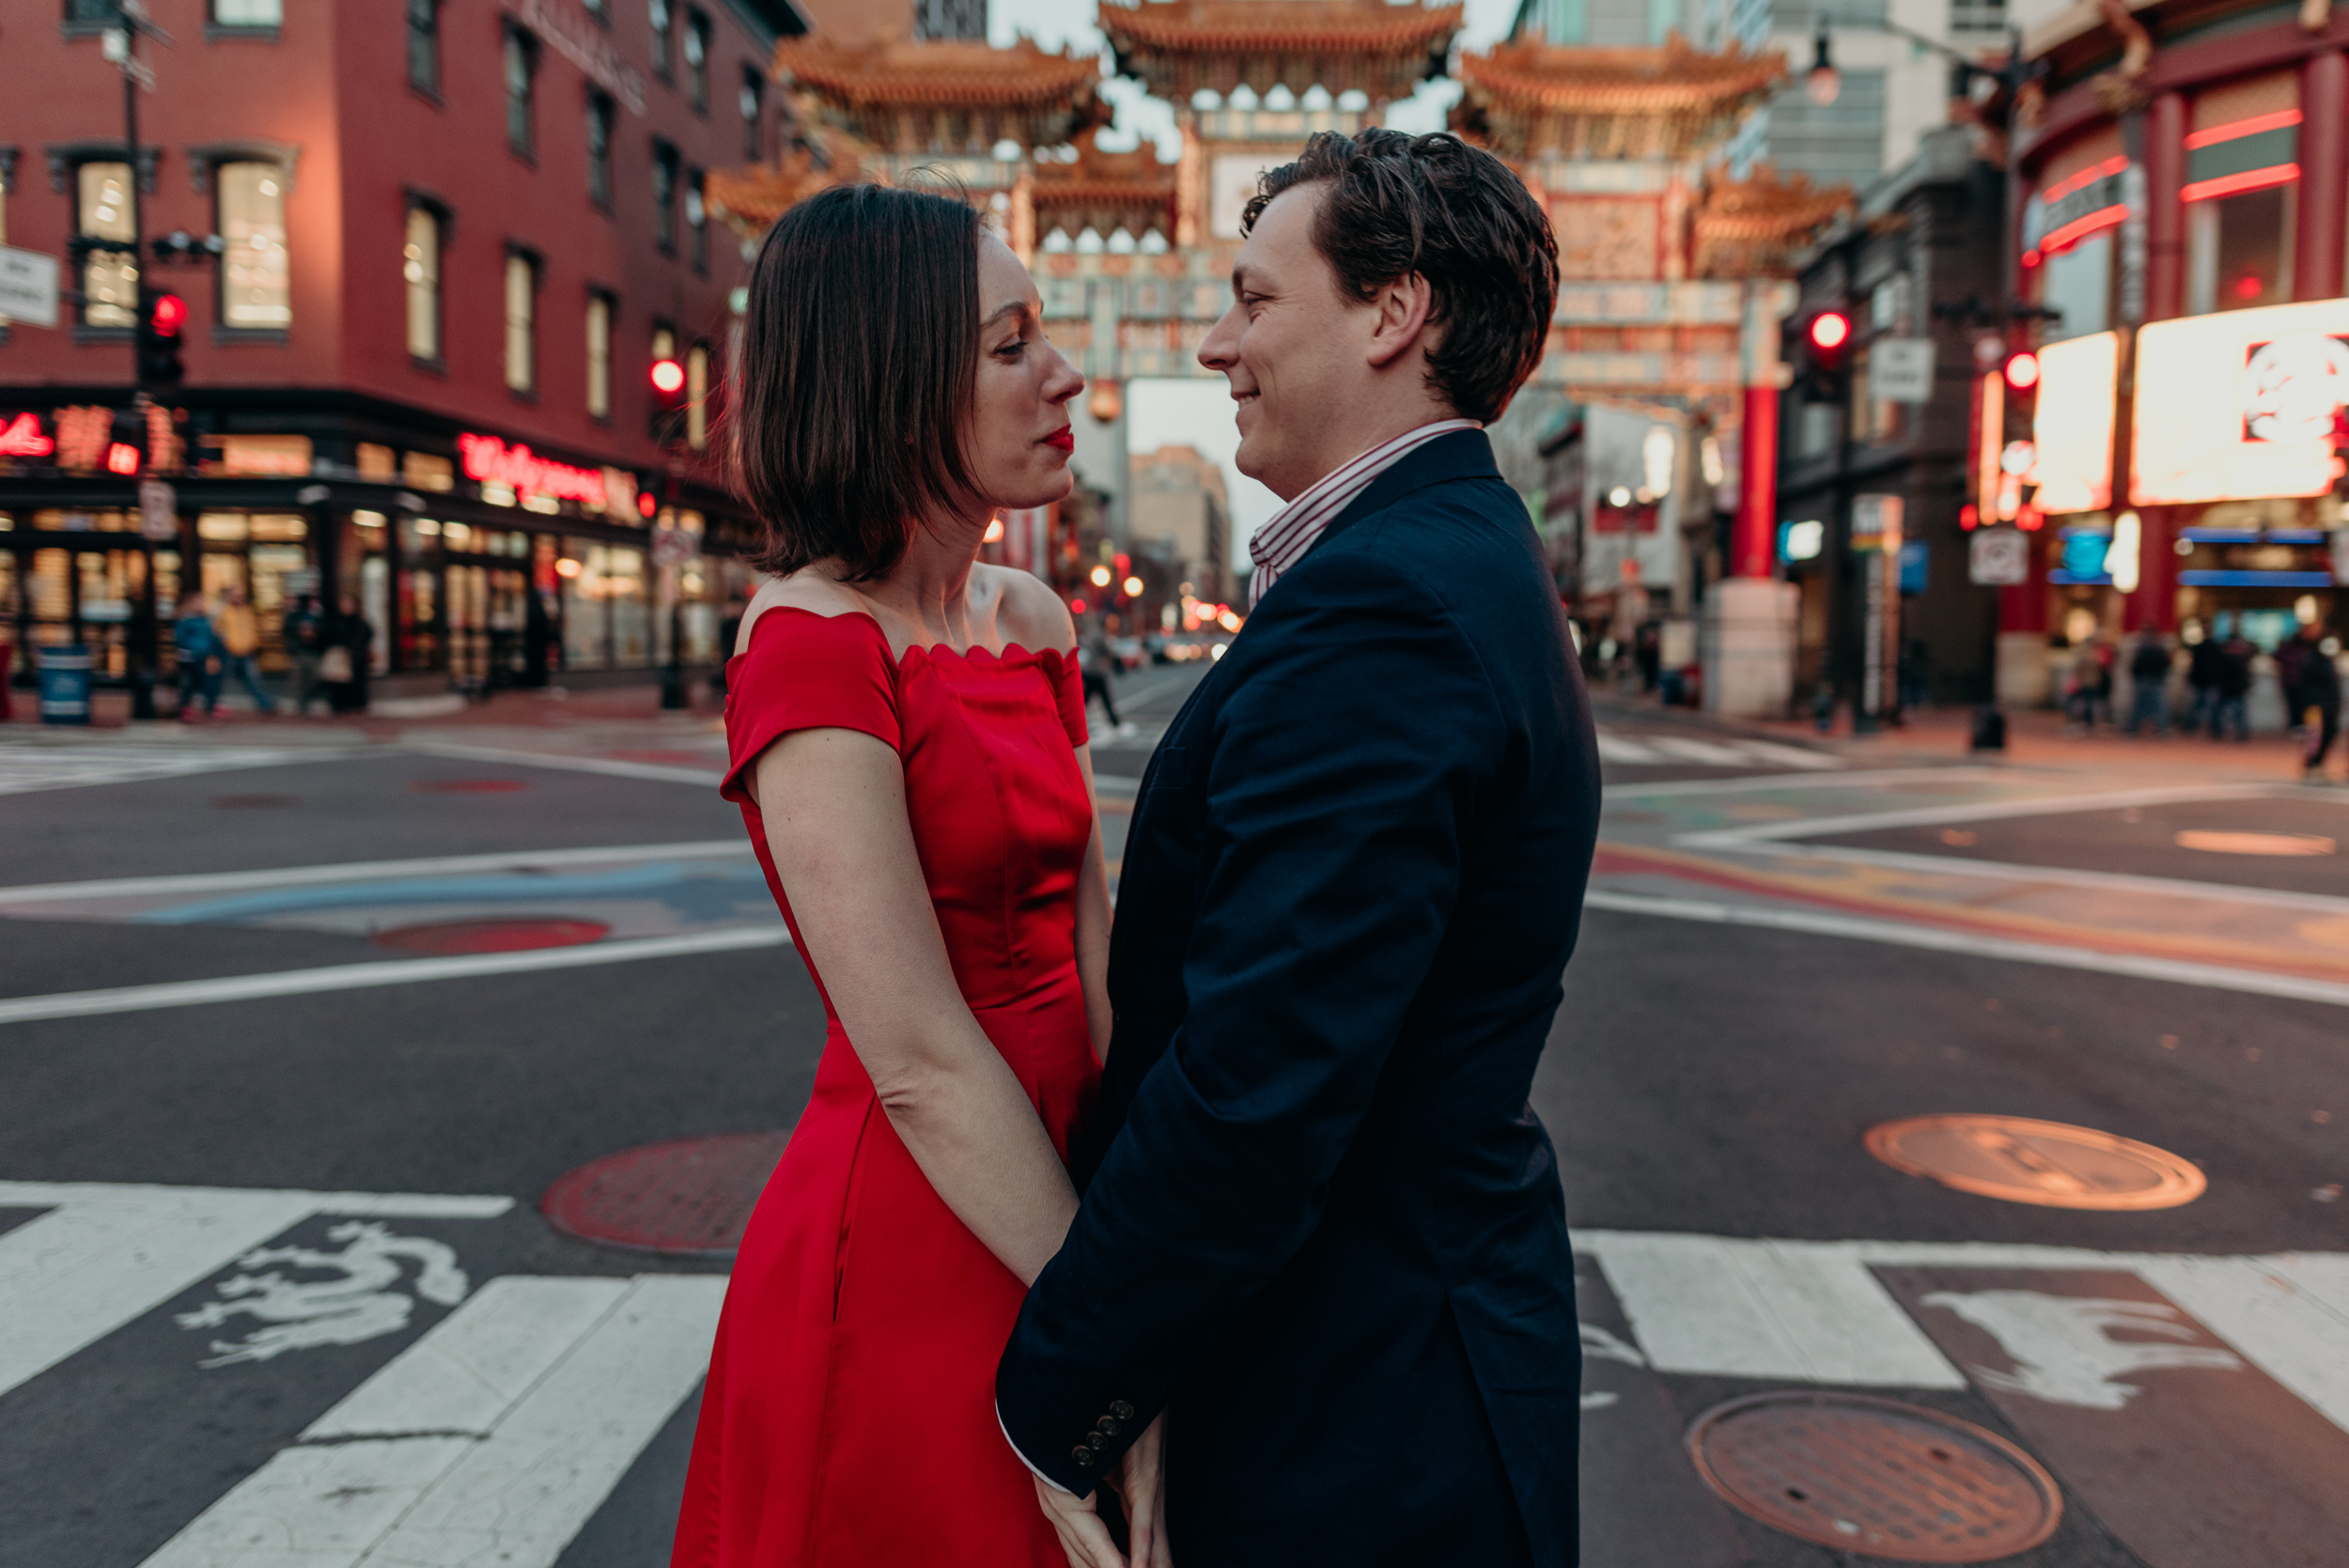 NATIONAL PORTRAIT GALLERY ENGAGEMENT PHOTO MEGAN GRAHAM PHOTOGRAPHY-4524.jpg